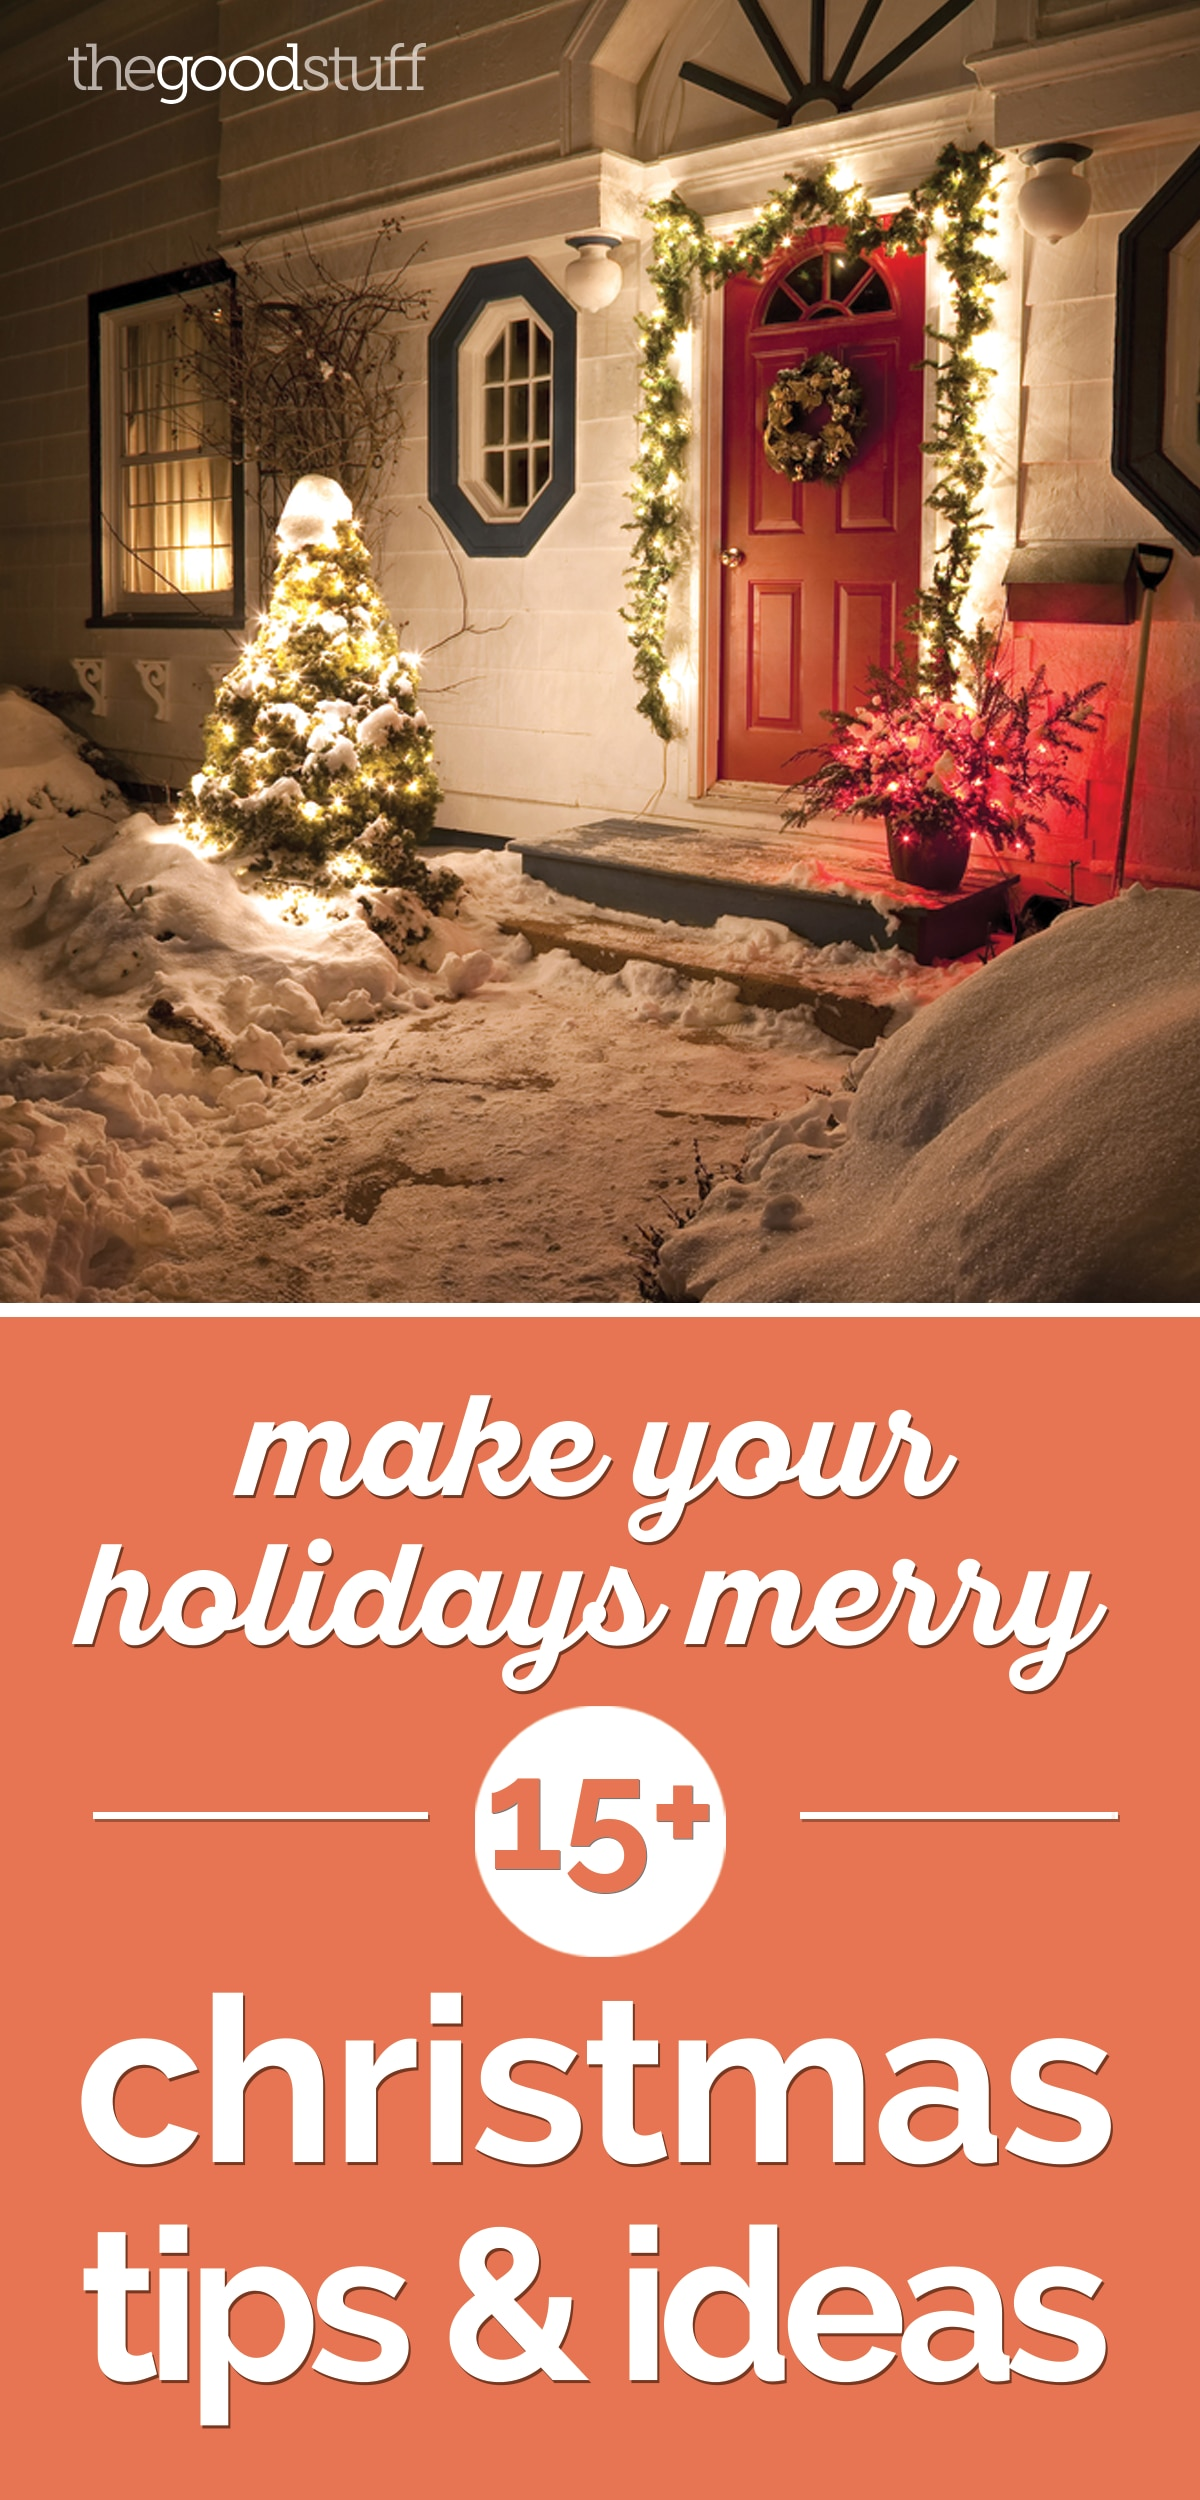 Make Your Holidays Merry: 15+ Christmas Tips & Ideas | thegoodstuff